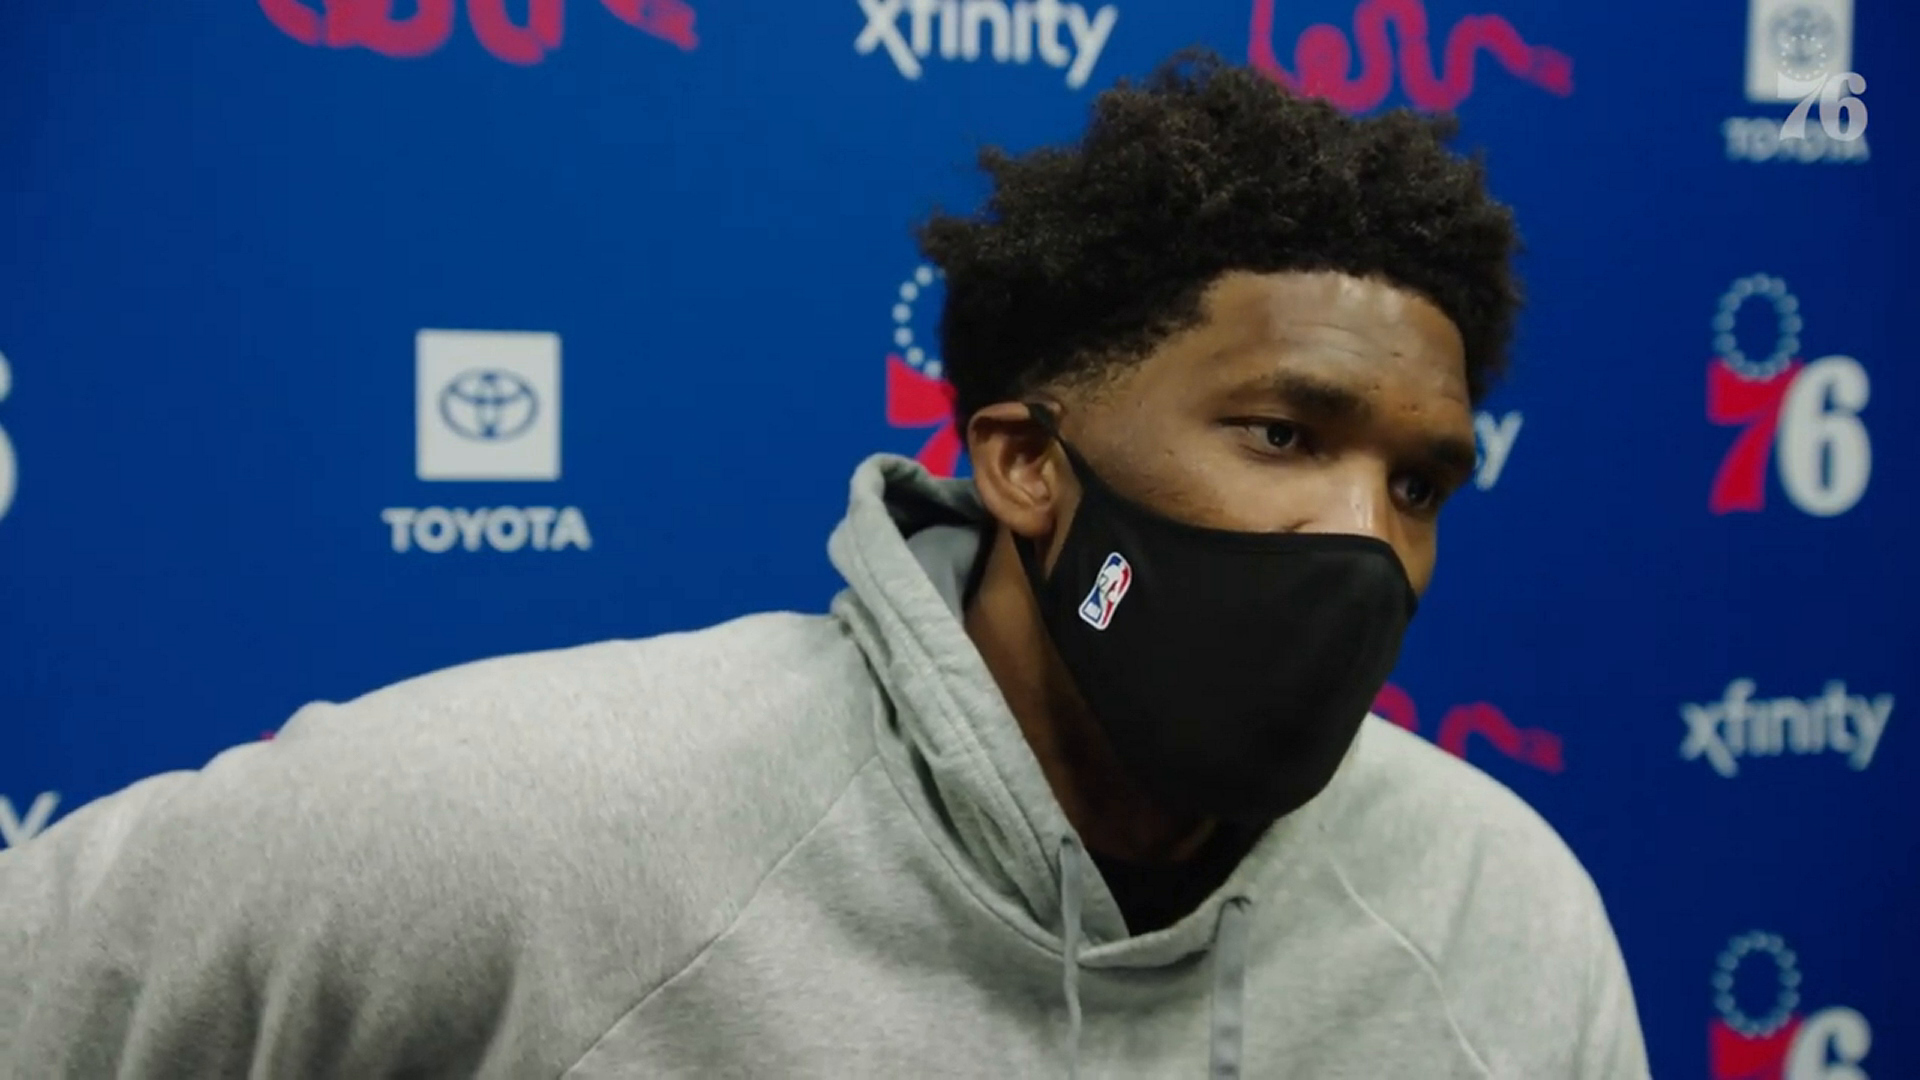 Joel Embiid | Postgame Media vs Miami Heat (01.12.21)